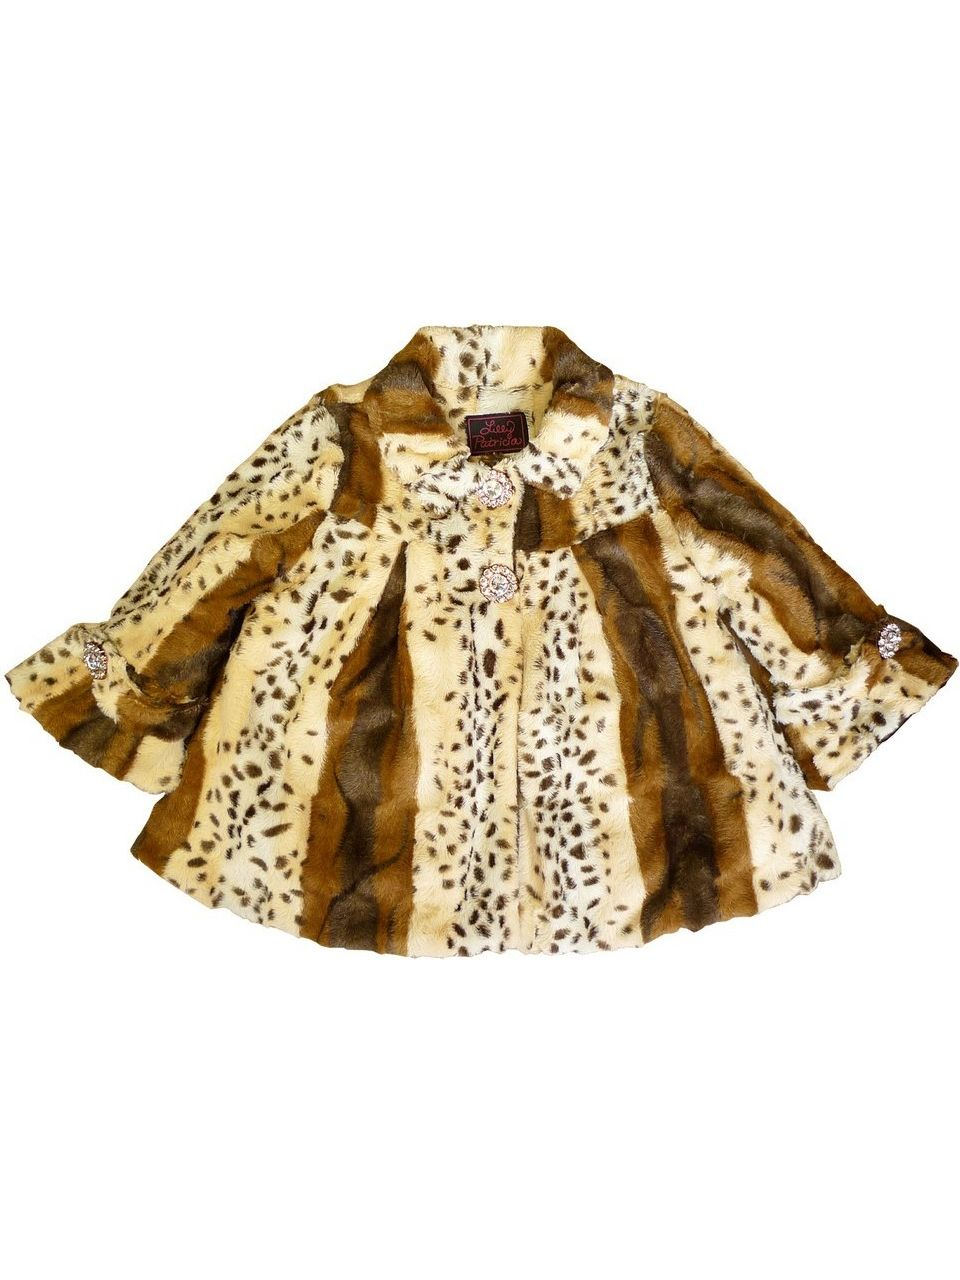 Little Girls Tiger Lilly Faux Fur Coat 5-6